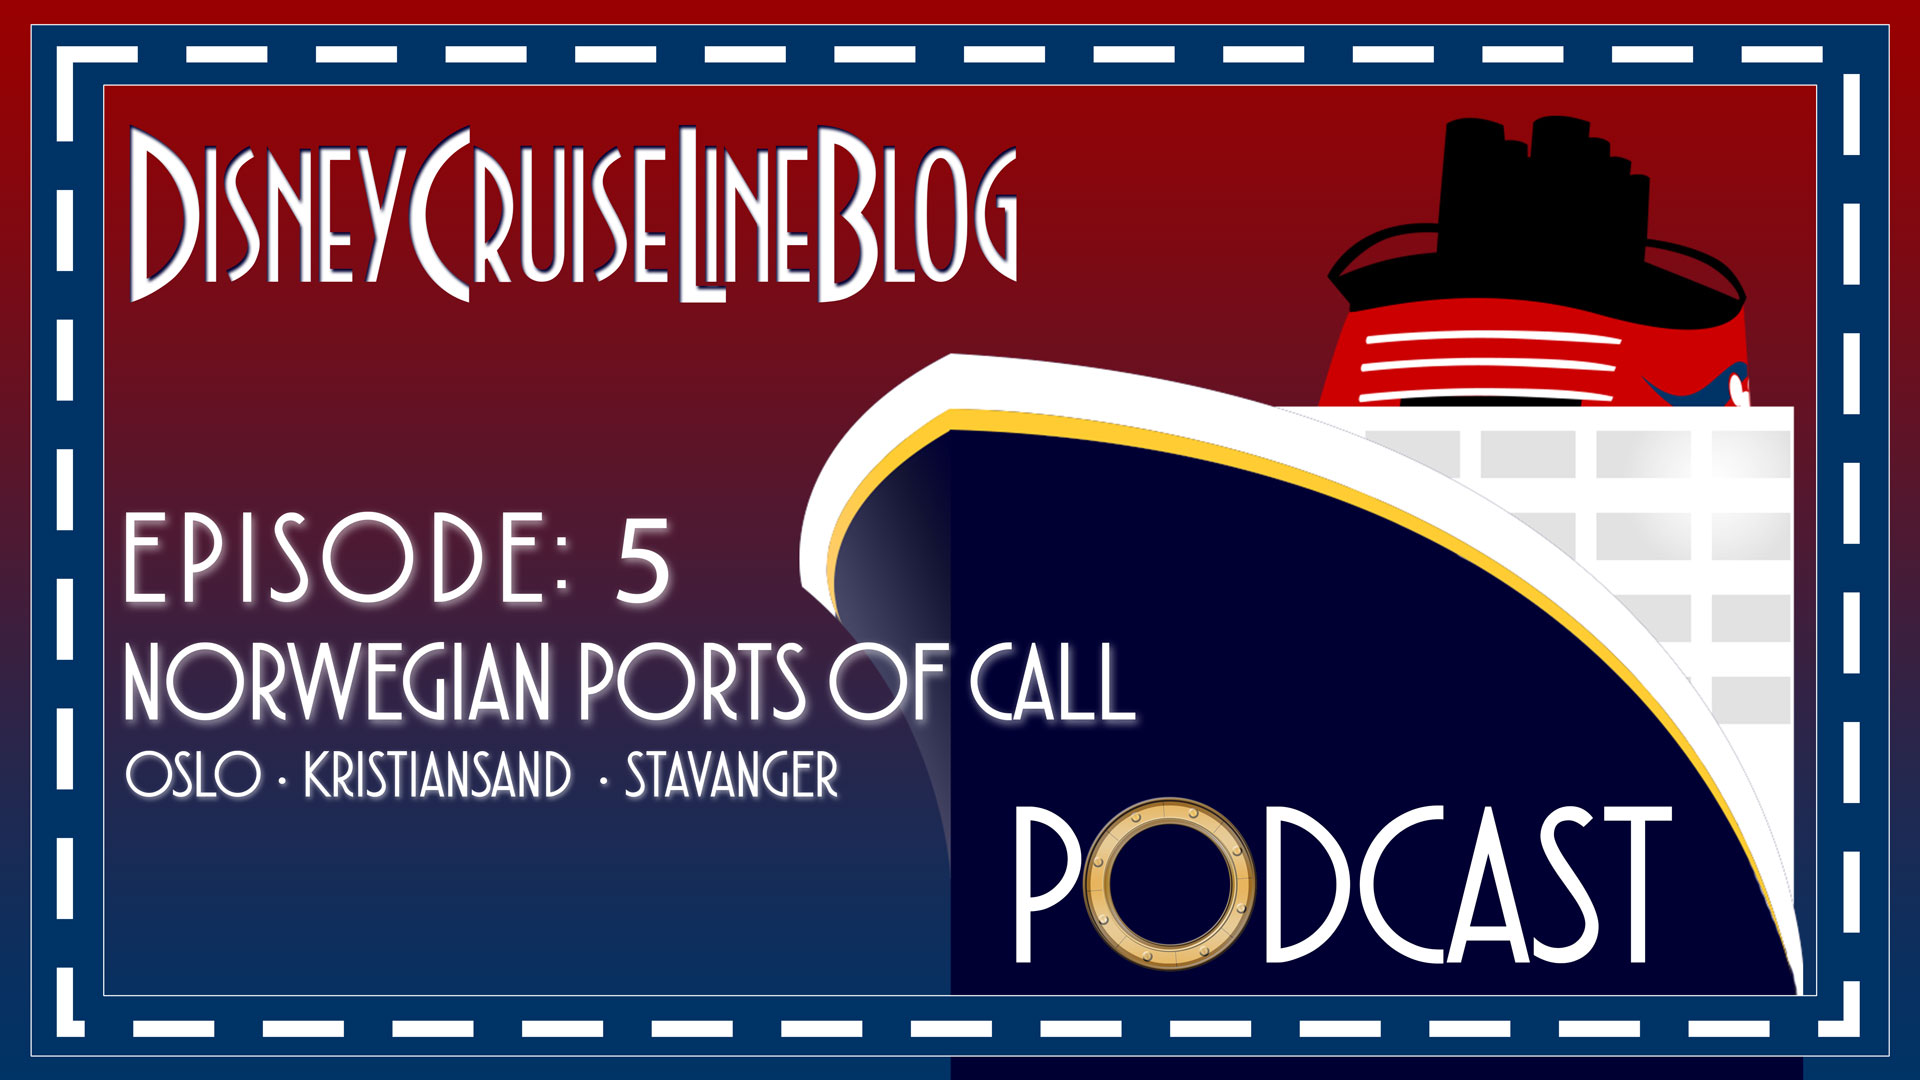 DCL Blog Podcast Episode 5 Norwegian Ports Of Call